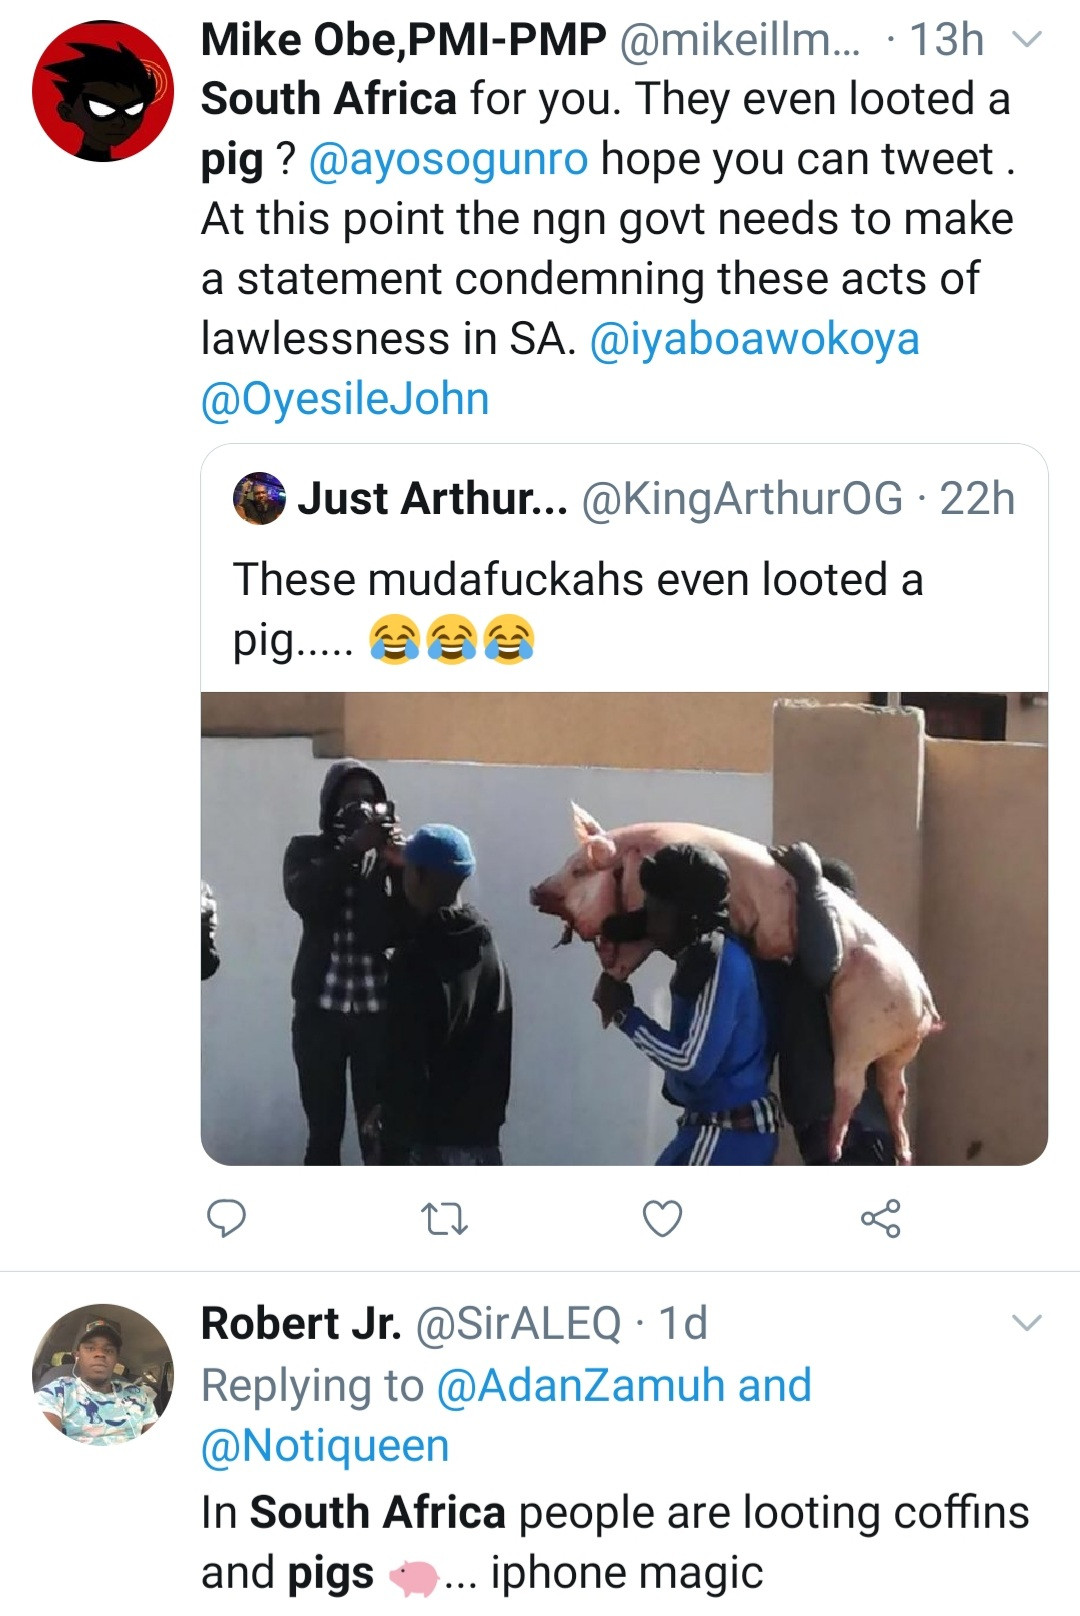 Over 30 killed, coffins, live pigs, pig carcasses and more looted as chaos continues in South Africa over former President, Jacob Zuma